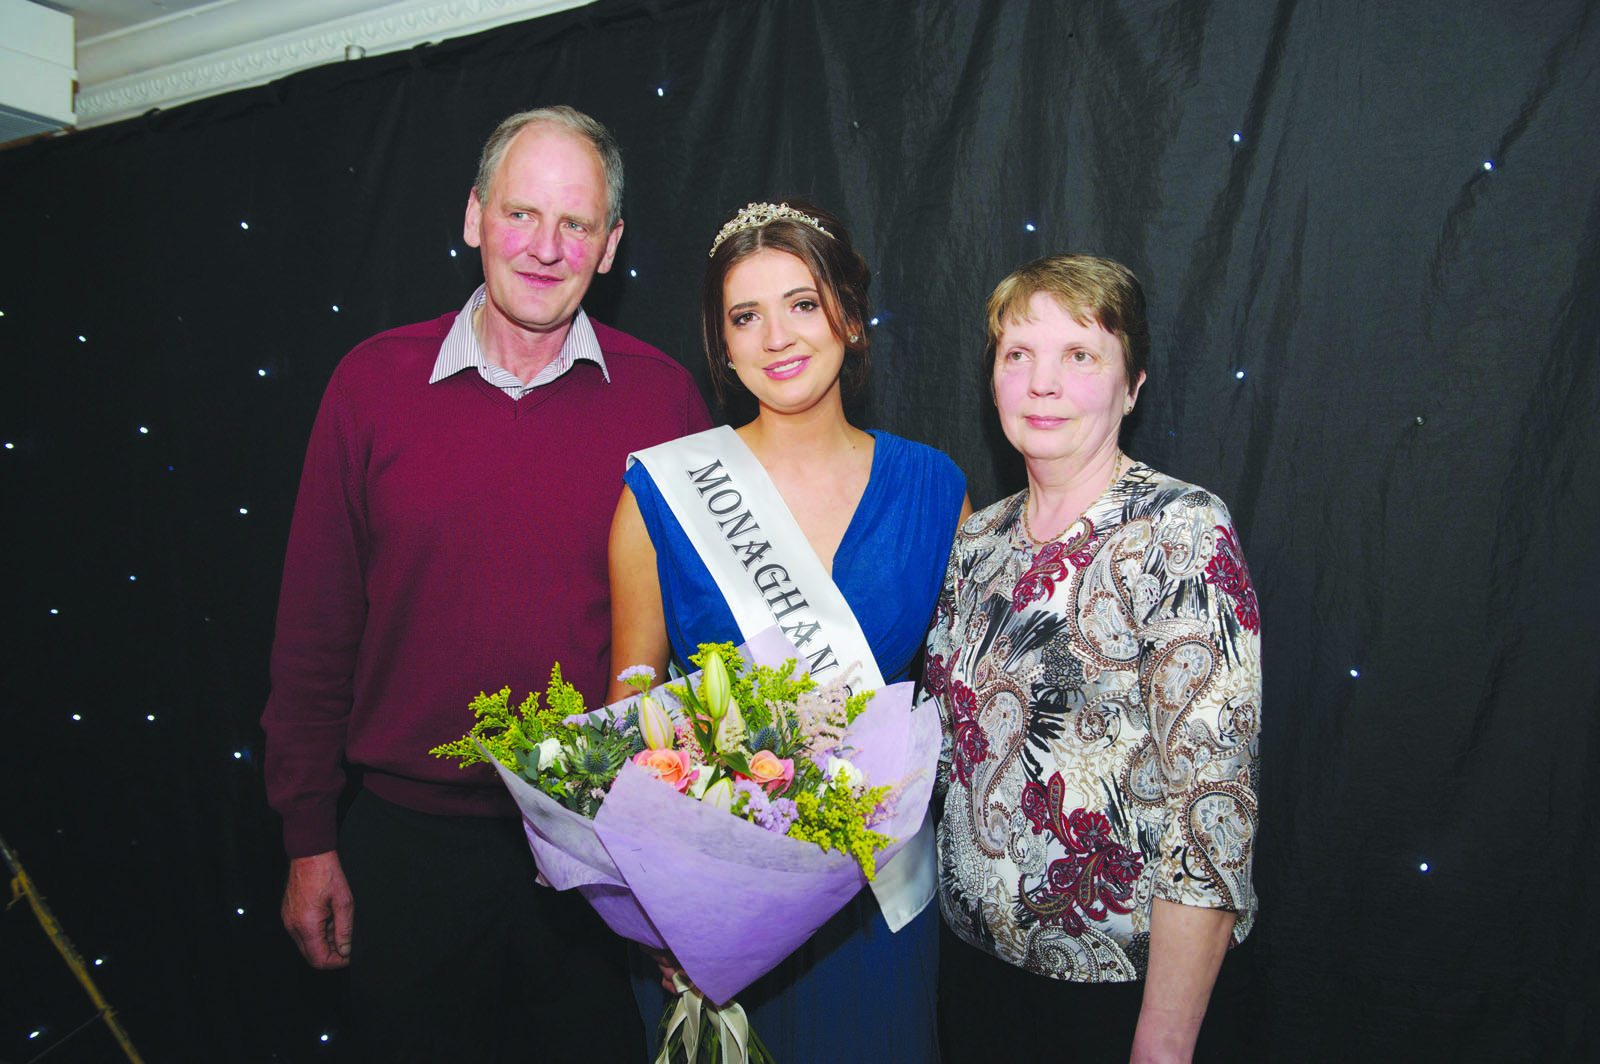 Pamela Allen, centre, 2016 Monaghan Rose, with her parents Jim and Iris Allen, at the Monaghan Rose Selection night in The Four Seasons Hotel, Monaghan. ©Rory Geary/The Northern Standard